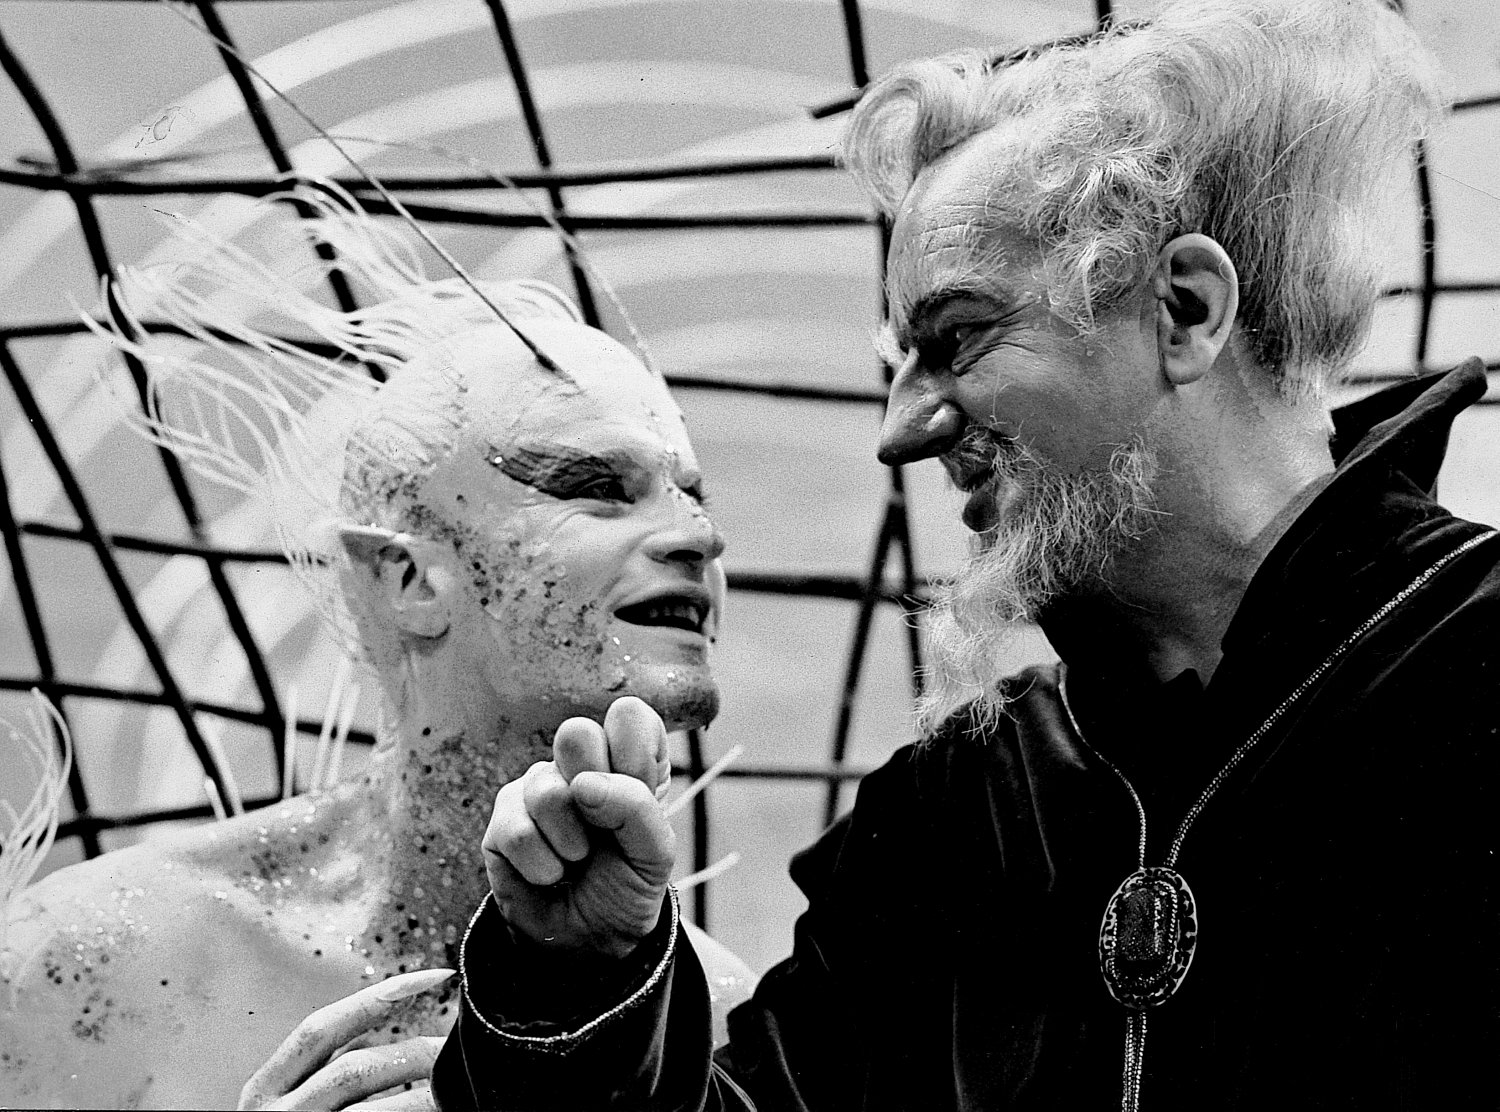 - Roddy McDowall as Ariel and Maurice Evans as Prospero  in Shakespeare's <I>The Tempest</I> - Shakespeare - The Tempest - Richard Burton - Maurice Evans - Lee Remick - Roddy McDowall - NBC Television - Hallmark Hall of Fame - - art  - photography - by Tony Karp